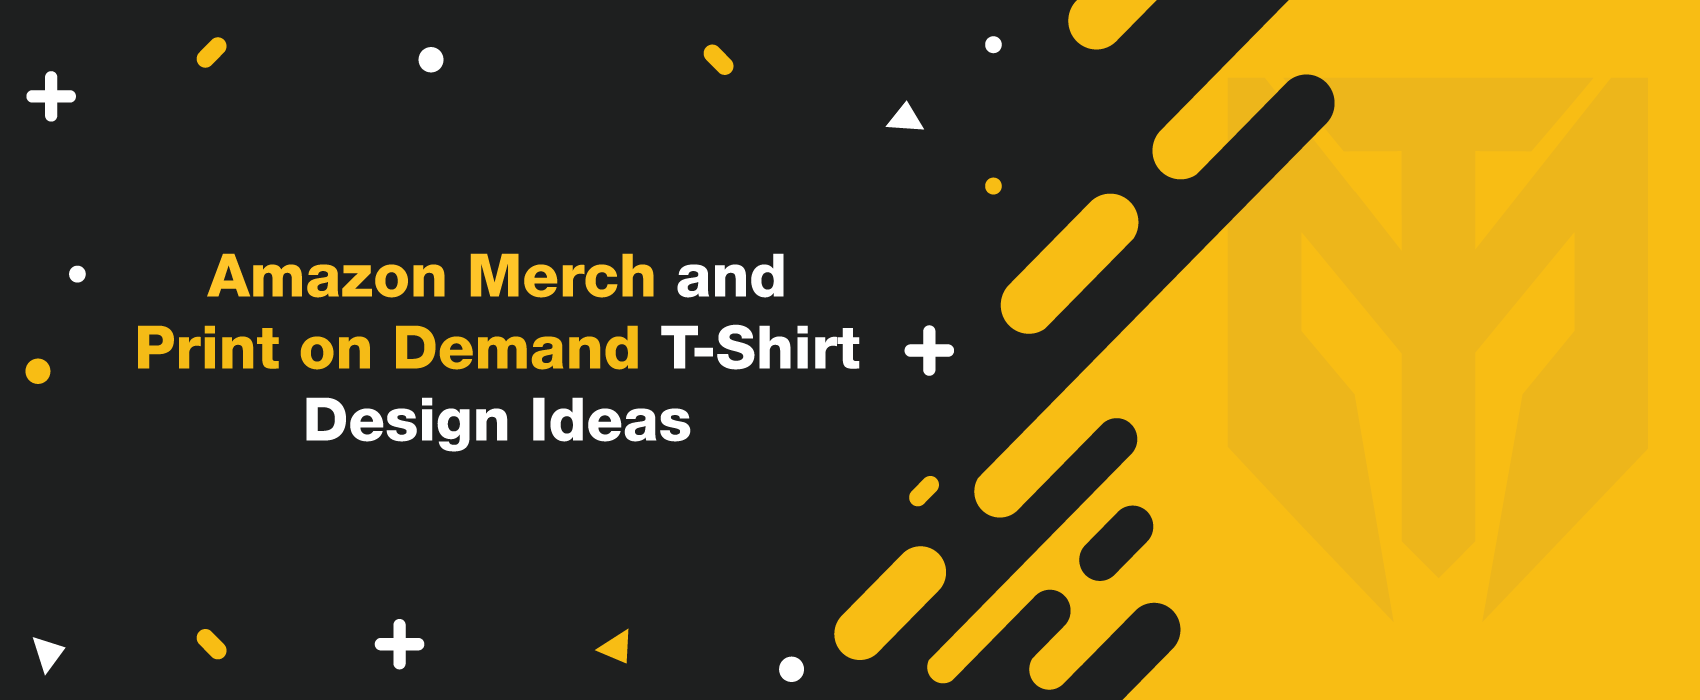 merch-by-amazon-tshirts-design-ideas